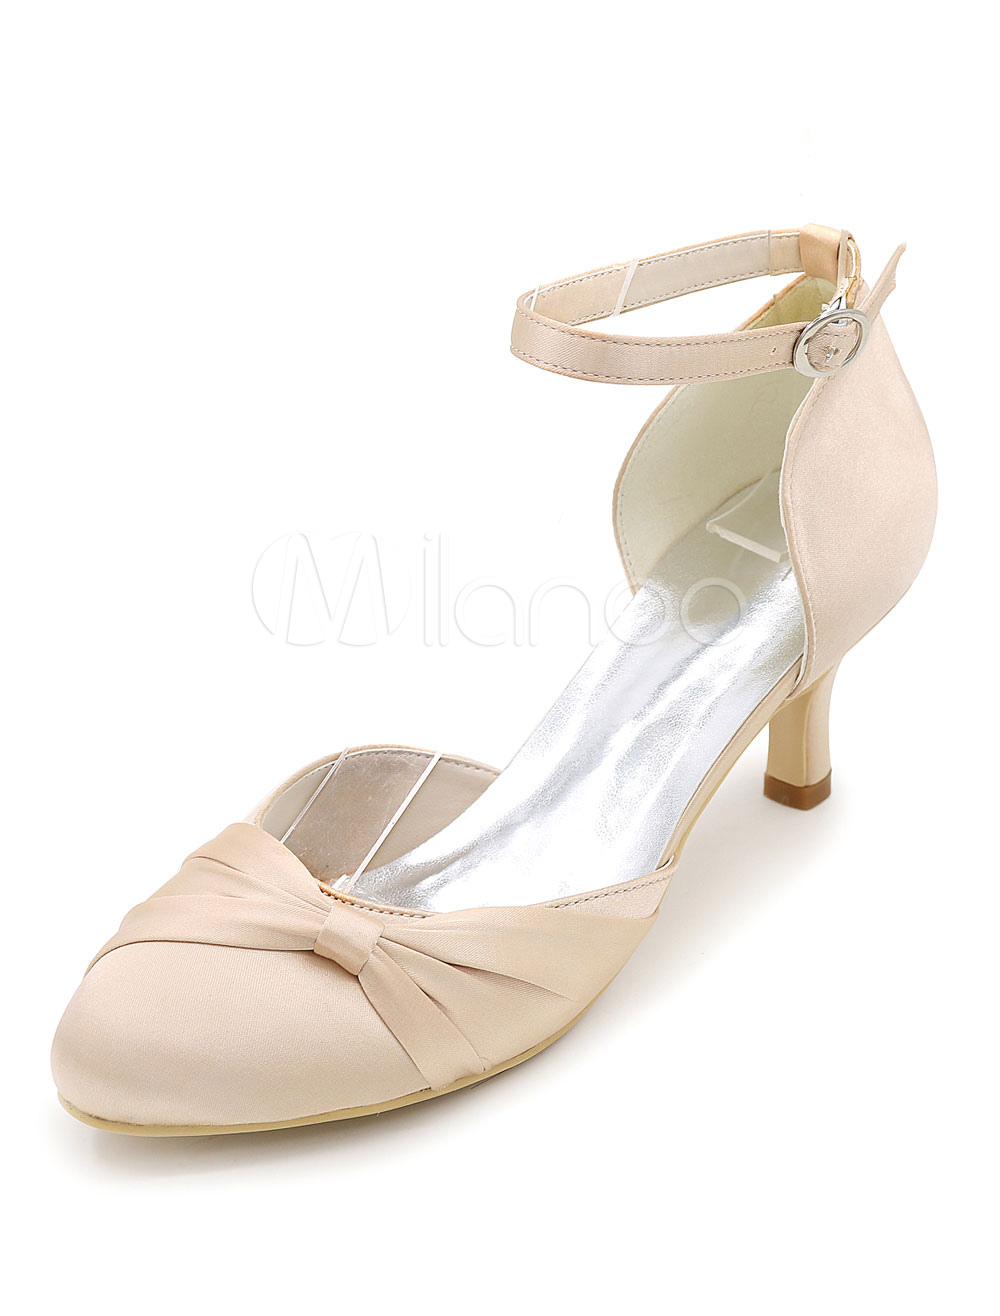 Ivory Wedding Shoes Satin High Heel Bridal Shoes Round Toe Ankle Strap Kitten Heel Pumps